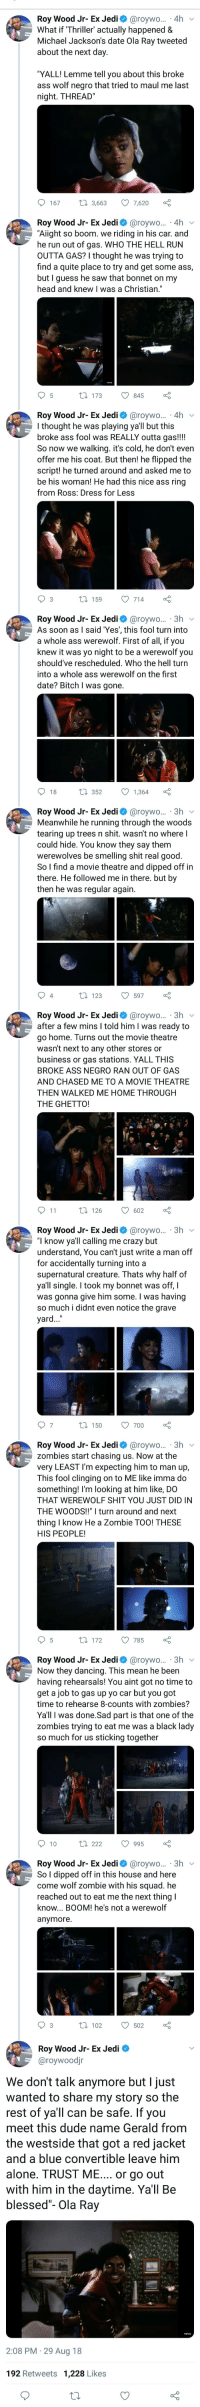 Thriller Date - Thread: Roy Wood Jr-Ex Jedi roywo 4h  What if Thriller actualy happened &  Michael Jacksons date Ola Ray tweeted  about the next day.  YALL! Lemme tel you about this broke  ass wolf negro that tried to maul me last  night. THREAD  Roy Wood Jr- Ex Jedi @raywo...-.4h  Alight so boom we riding in his car and  he run out of gas. WHO THE HELL RUN  OUTTA GAS? I thought he was trying to  find a quite place to try and get some ass  but I guess he saw that bonnet on my  head and knew I was a Christian  Roy Wood Jr. Ex Jedi Ф @roywo.. , 4h  I thought he was playing yail but this  broke ass fool was REALLY outta gas!!  So now we waking. it's cold, he dont even  offer me his coat. But thenl he fipped the  scriptl he turned around and asked me to  be his womare He had this nice ass ring  from Ross: Dress for Less  Roy Wood Jr-Ex Jedi roywo 3  As soon asI said Yes, this fool turn into  a whole ass werewolt. First of all i you  knew it was yo night to be a werewolf you  shouldve rescheduled. Who the hell tum  into whole ass werewolf on the first  date? Bitch I  Roy Wood Jr-Ex Jedi roywo. 3h  Meanwhile he running through the woods  tearing up trees n shit, wasn't no where I  could hide. You know they say them  werewolves be smelling shit real good  So I find a movie thestre and dpped off irn  there. He followed me in there but by  then he was regular again  Roy Wood Jr-Ex Jedi@rawo  after a few mins I told him I was ready to  go home. Turns out the movie theatre  wasnt next to any other stores or  business or gas stations. YALL THIS  BROKE ASS NEGRO RAN OUT OF GAS  AND CHASED ME TOA MOVIE THEATRE  THE GHETTO!  Roy Wood Jr- Ex Jedi@raywo...-3h  1 know yall calling me crazy but  understand, You cant just write a man off  for accidentally turning into a  supernatural creature. Thats why half of  yall single I took my bonnet was off, I  was gonna give him some. I was having  so much i didnt even notice the grave  yard.  Roy Wood Jr-Ex Jedi@rawo  zombies start chasing us